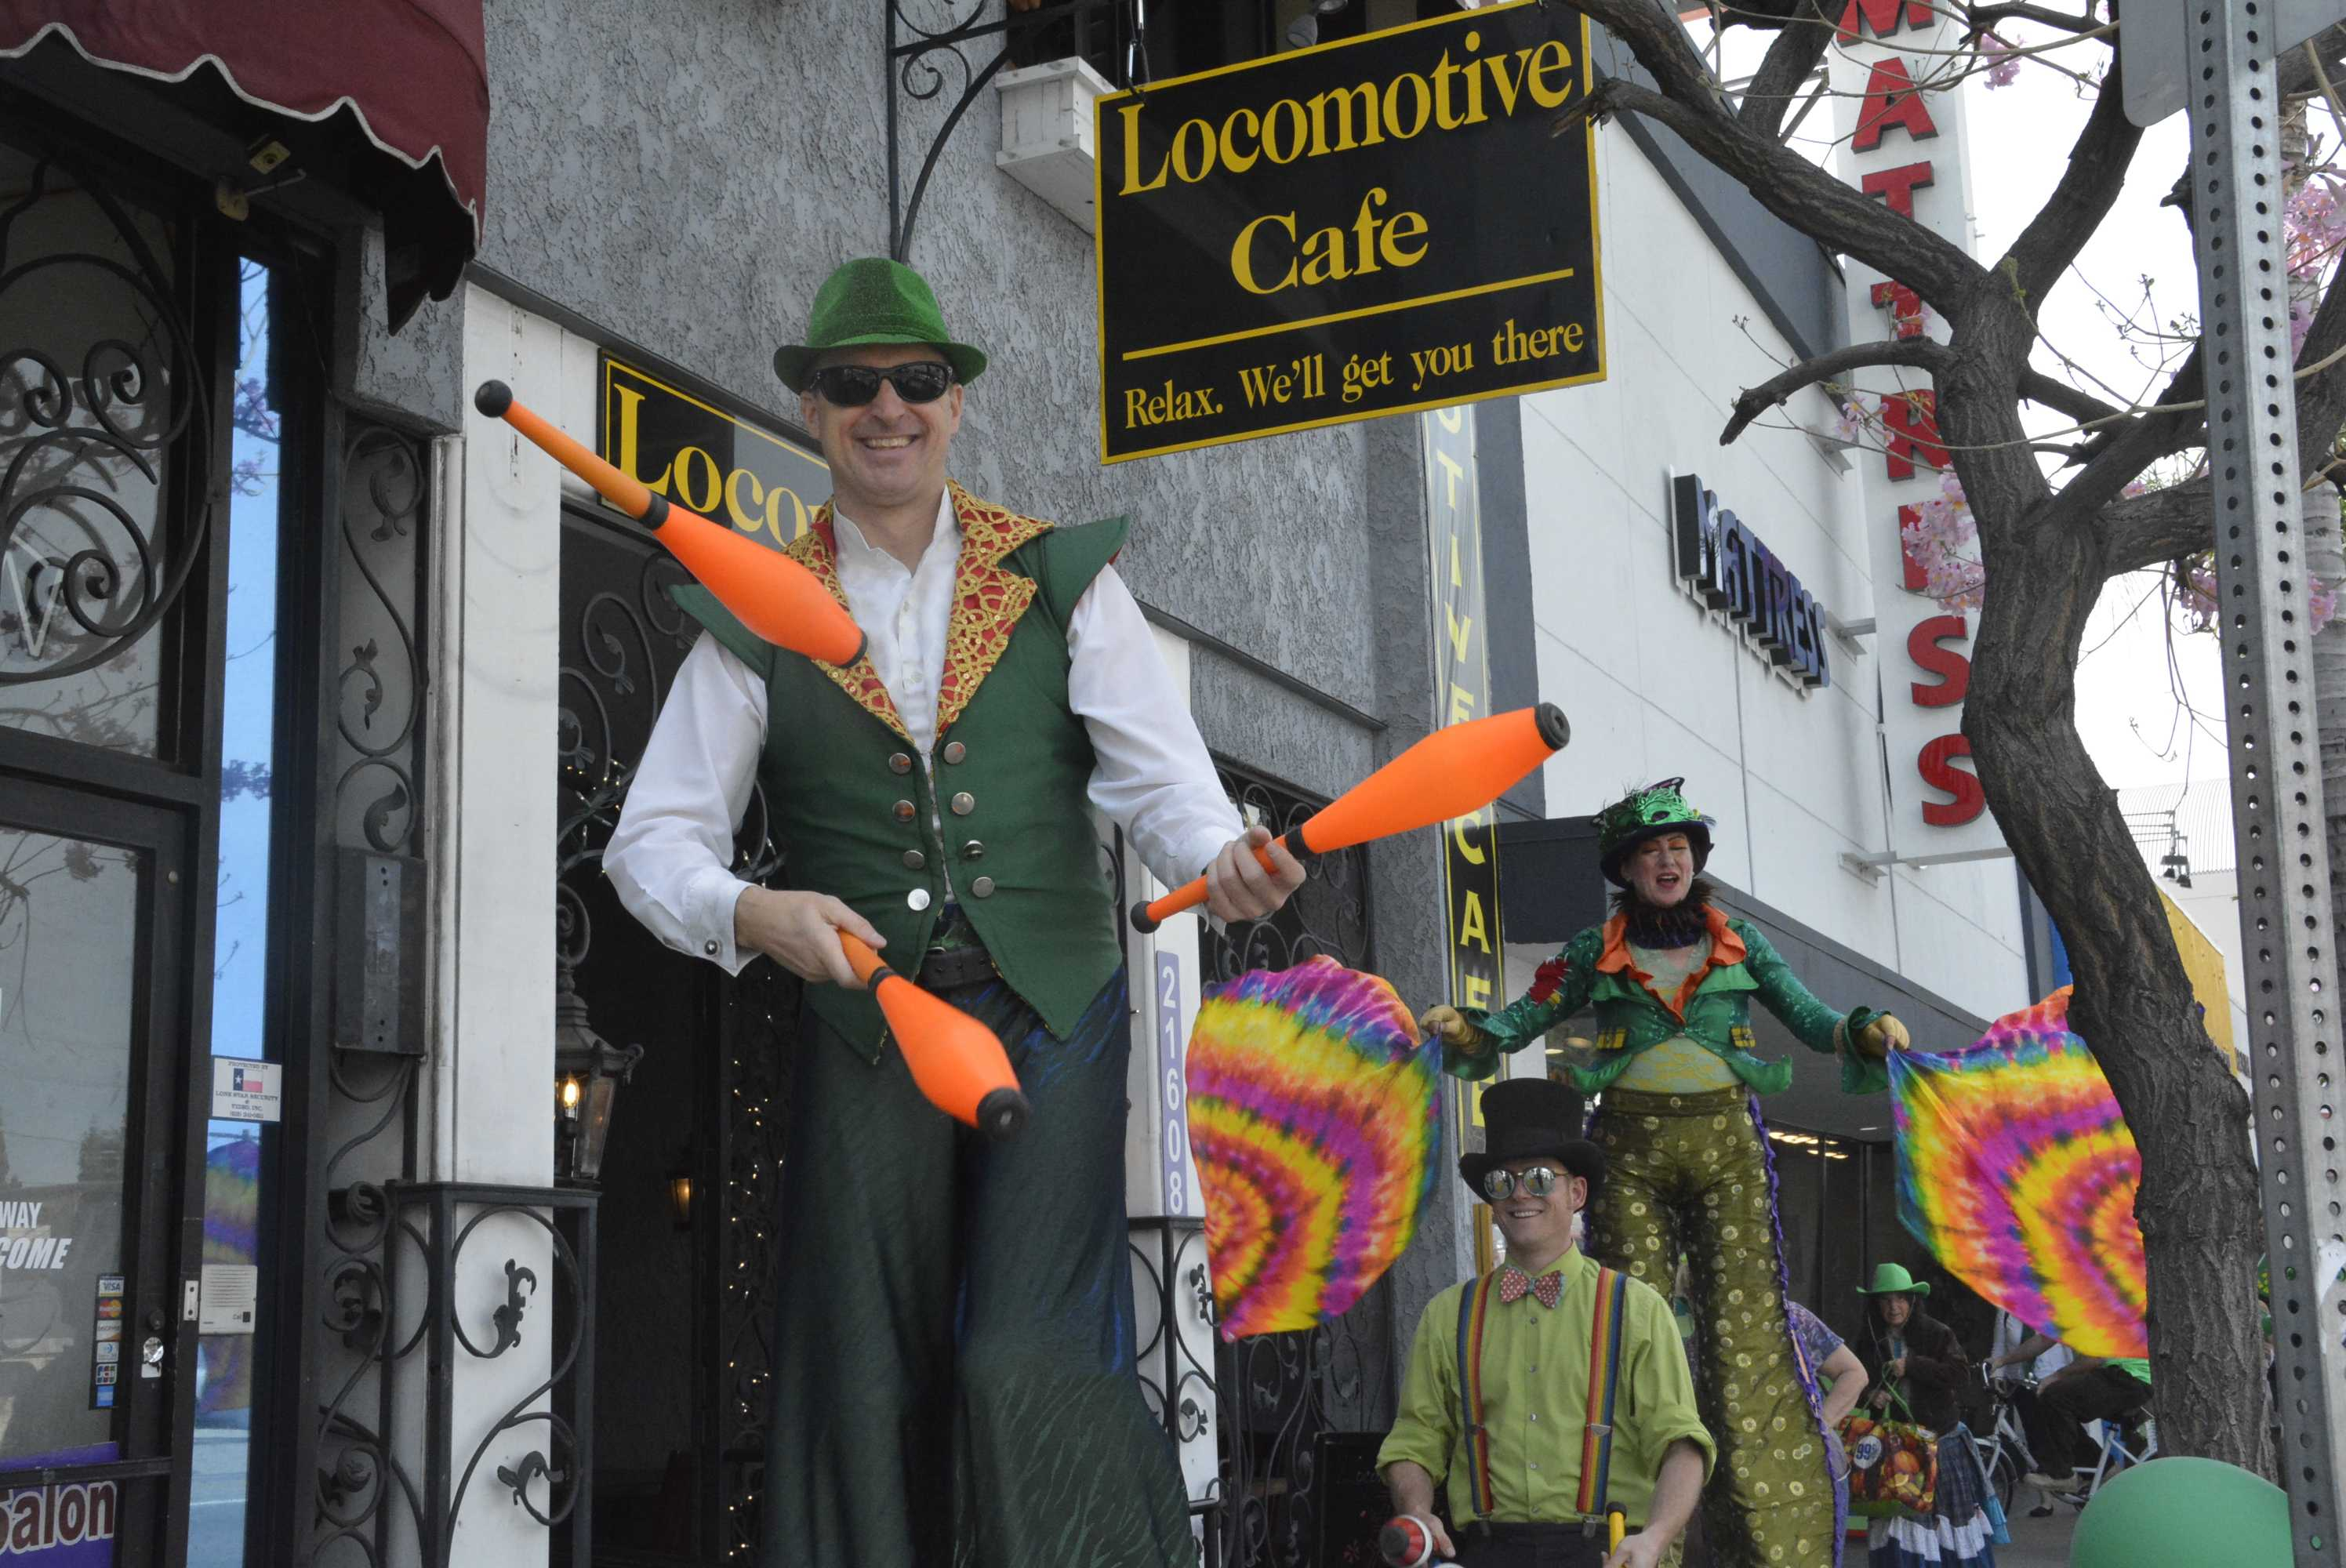 Rob Crites (left), juggler and stilt-walker, performs as he marches with other members in celebration of Irish heritage and St Patrick's Day. Photo credit: Nathalie Ramirez